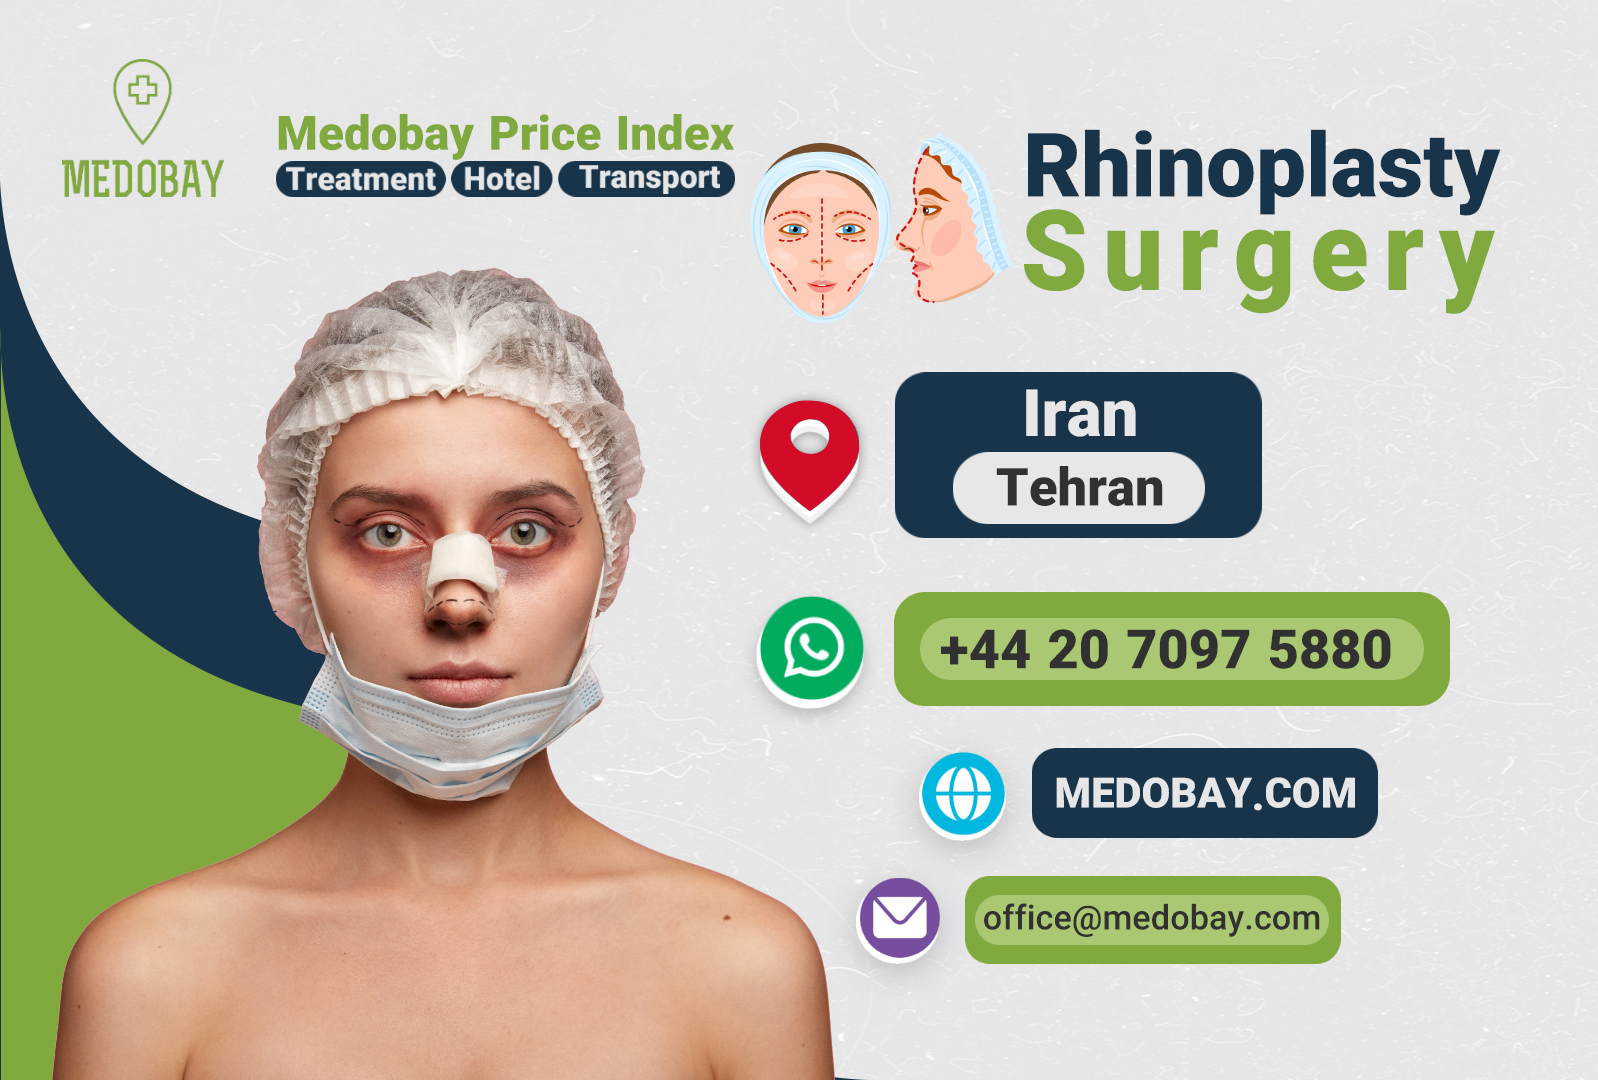 Rhinoplasty Surgery Tehran